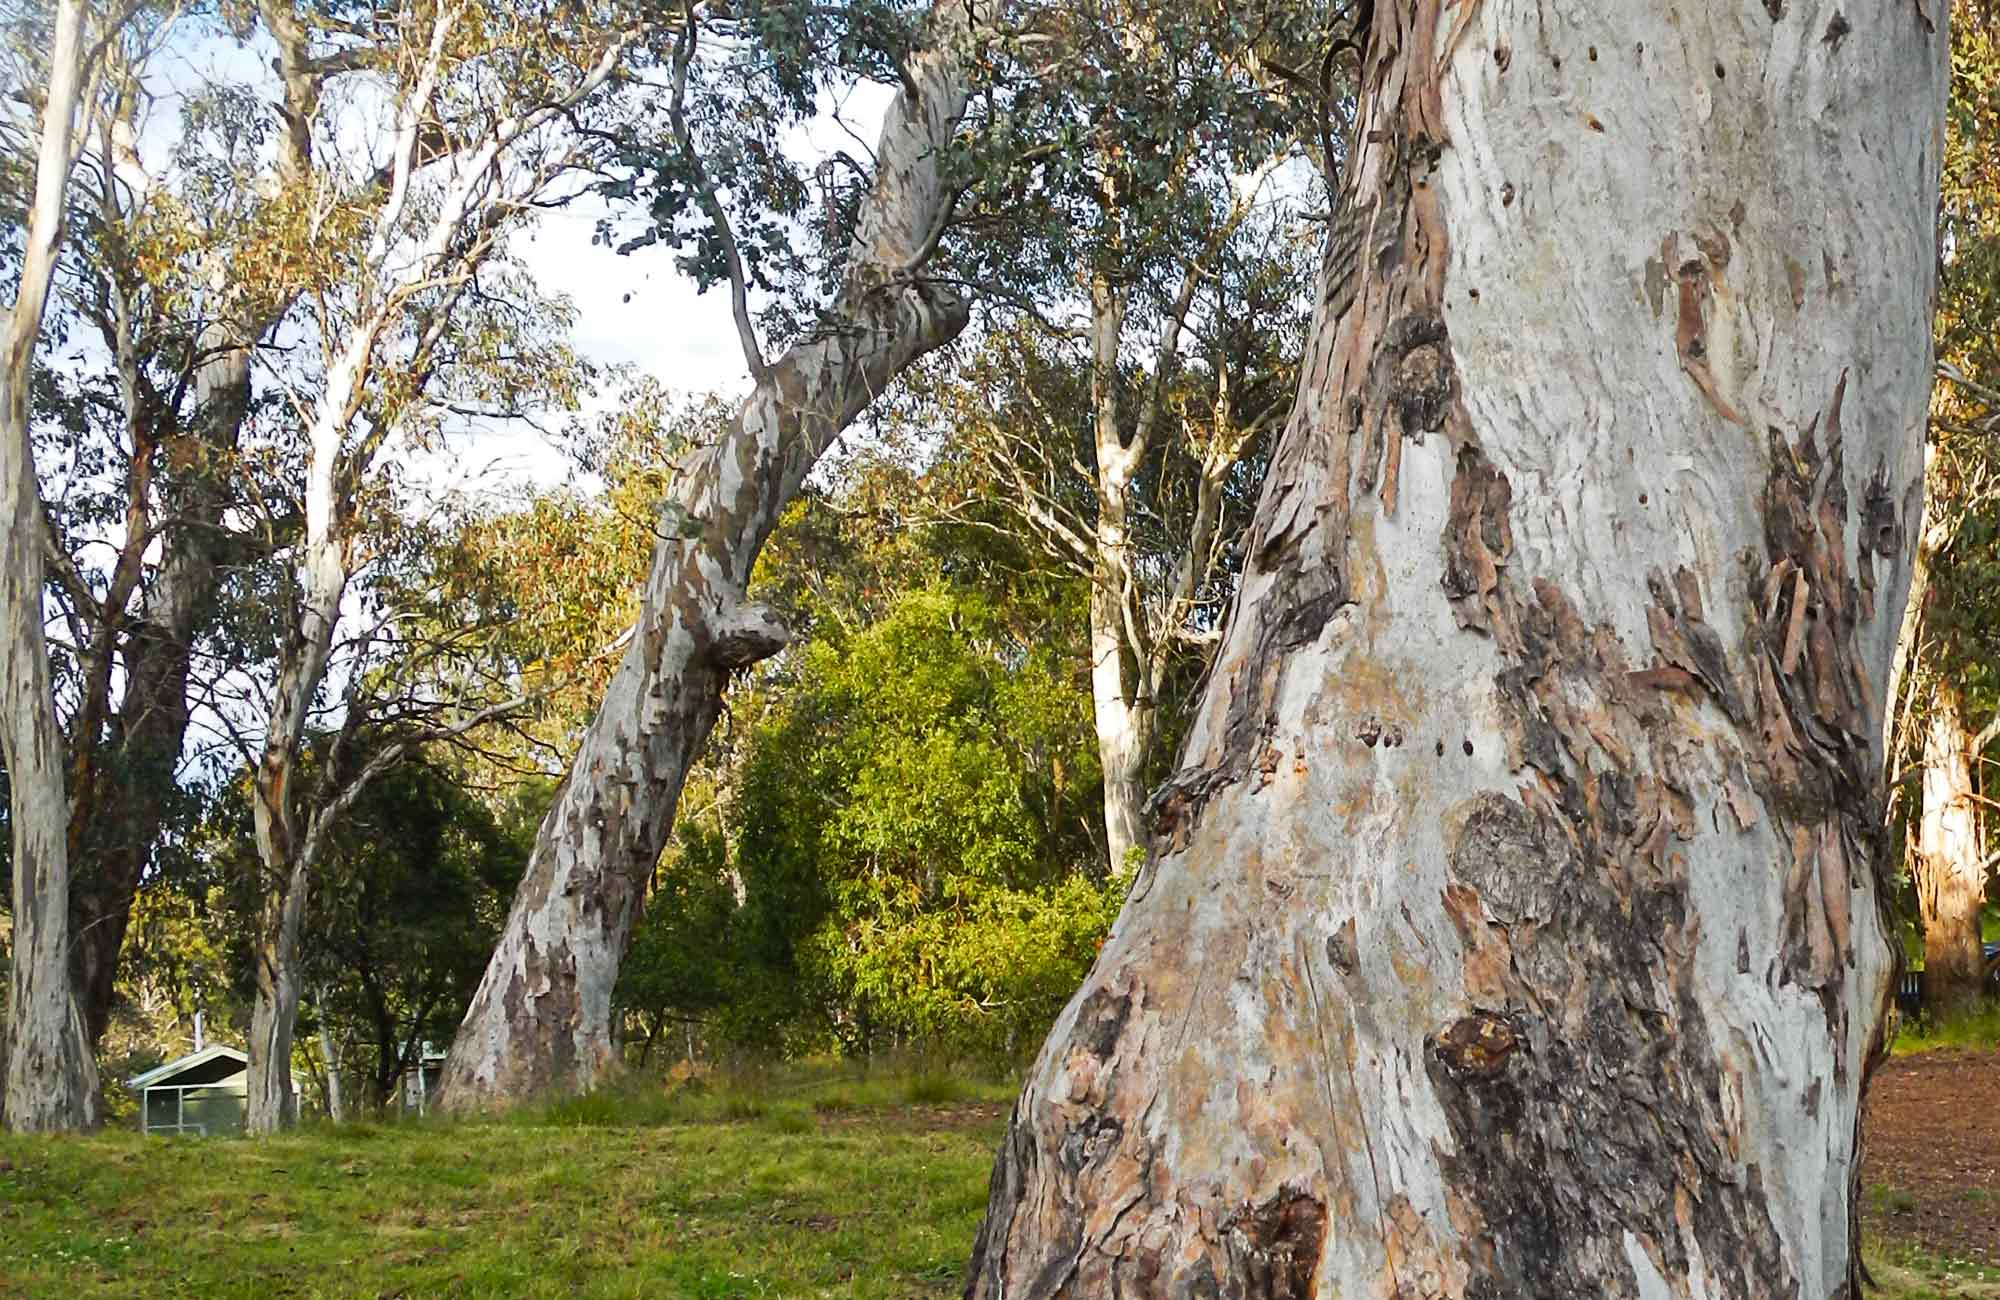 Gum trees. Photo:Debby McGerty